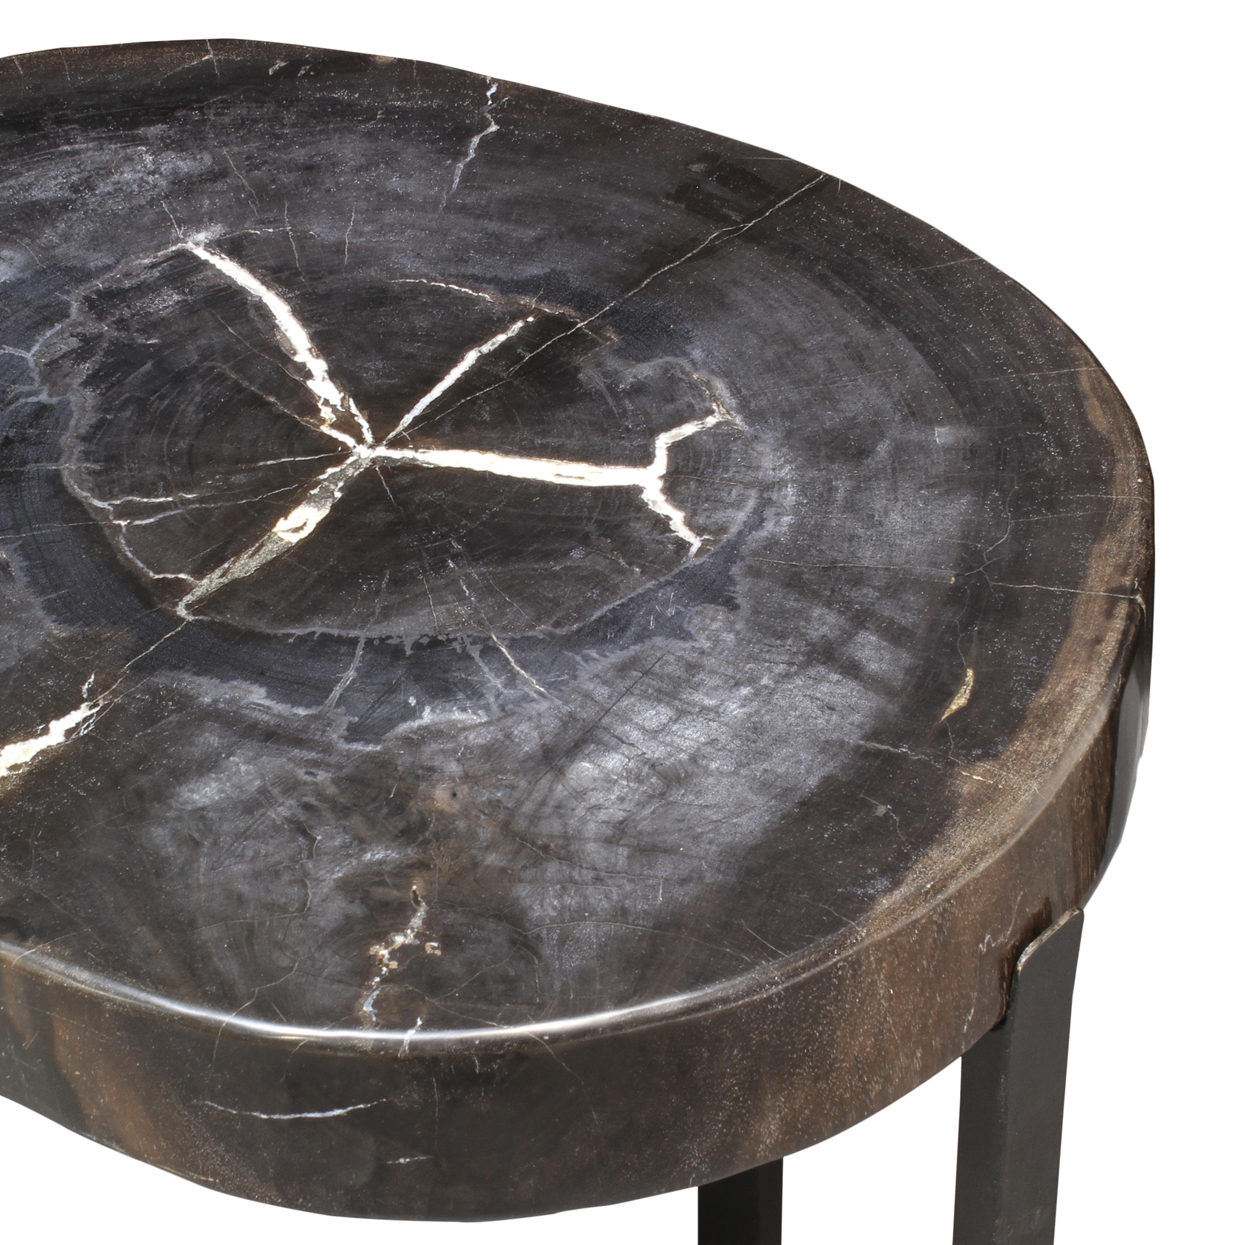 black petrified wood slice table mecox gardens fnst blkpet accent person bar threshold windham cabinet teal marble dinner inch tablecloth patio lawn chairs quatrefoil decor wine